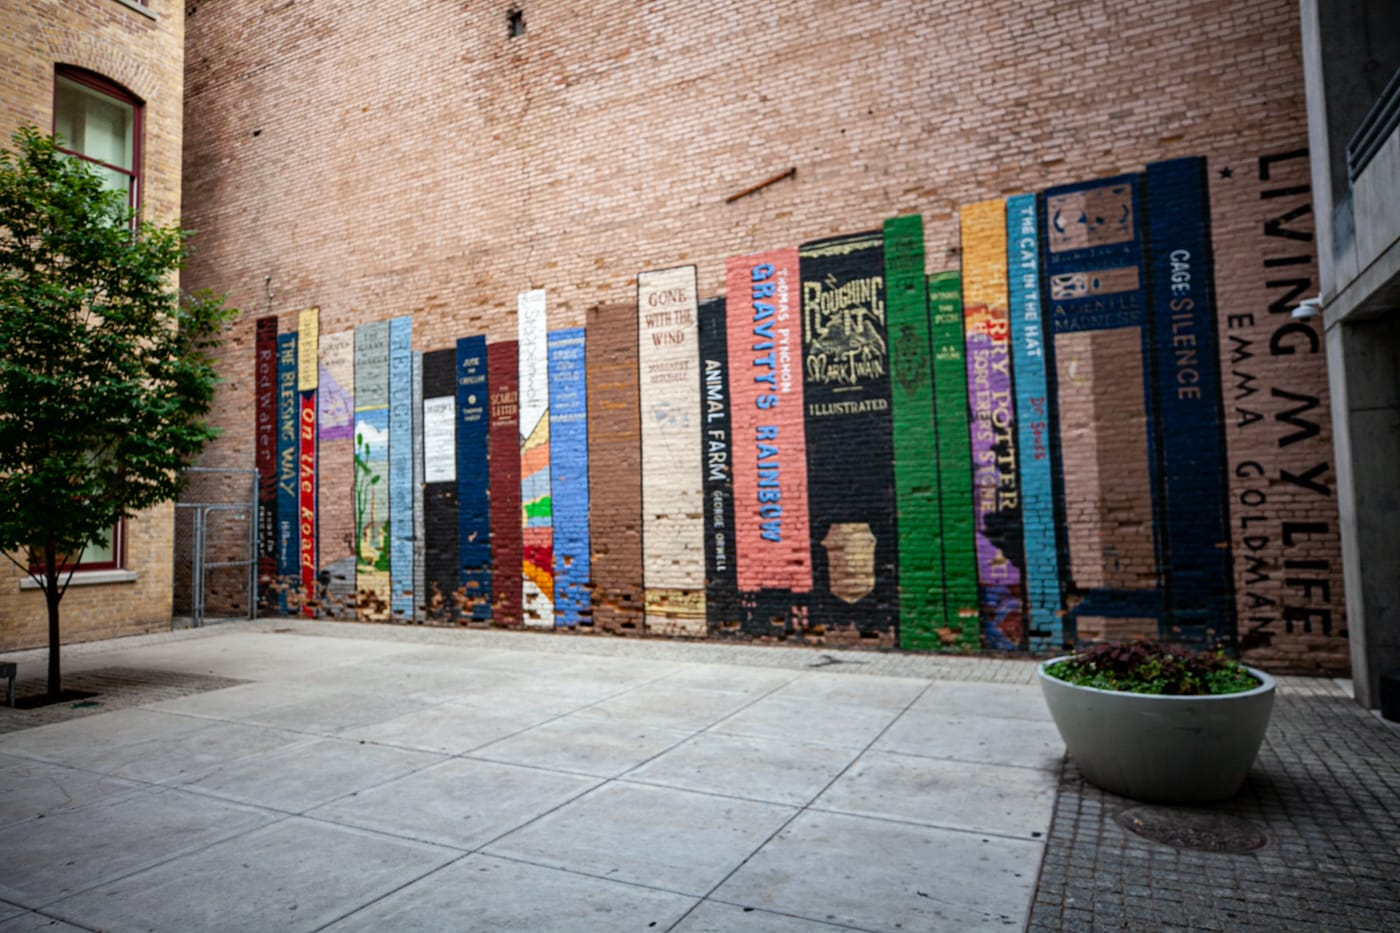 Wall of Books Mural in Salt Lake City, Utah | Book Mural at Eborn Books in Salt Lake City | Utah Murals